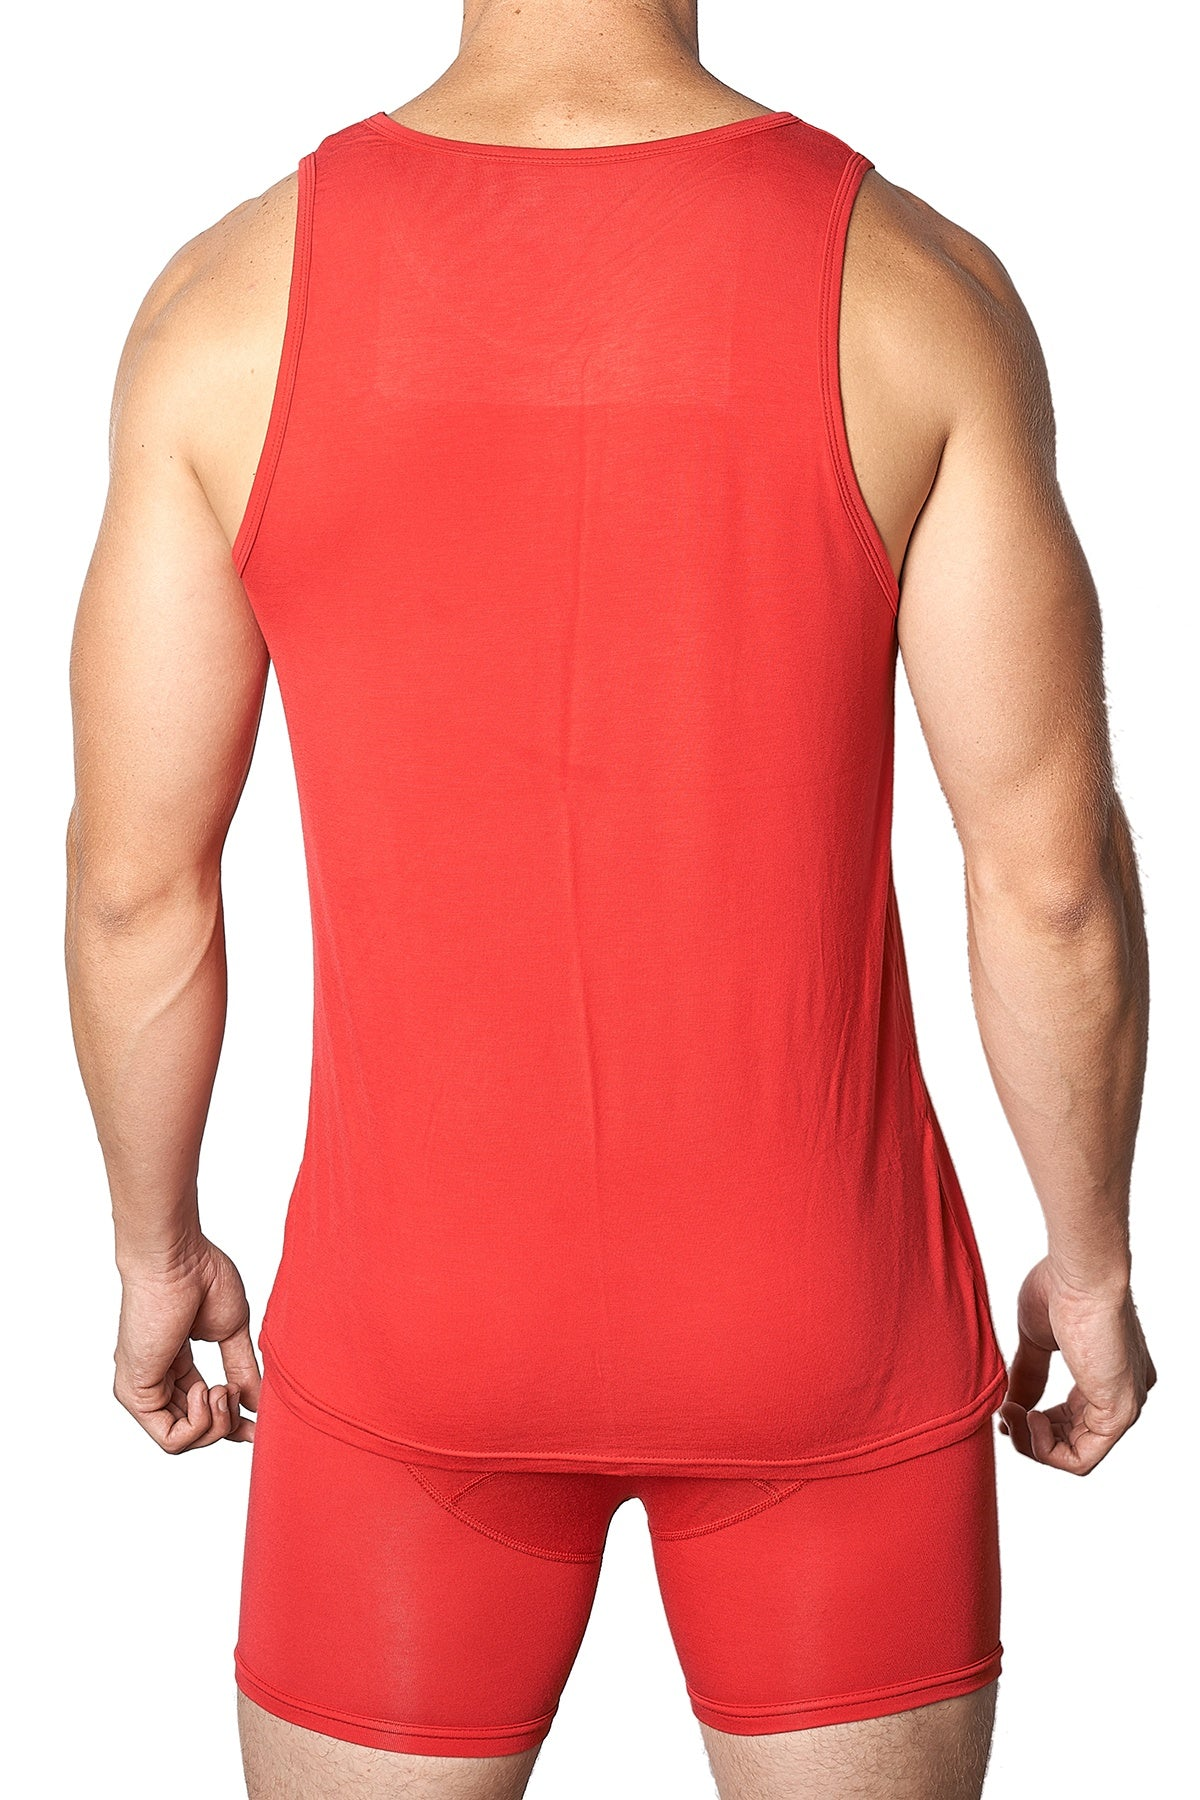 Yocisco's Red Essentials Tank Top